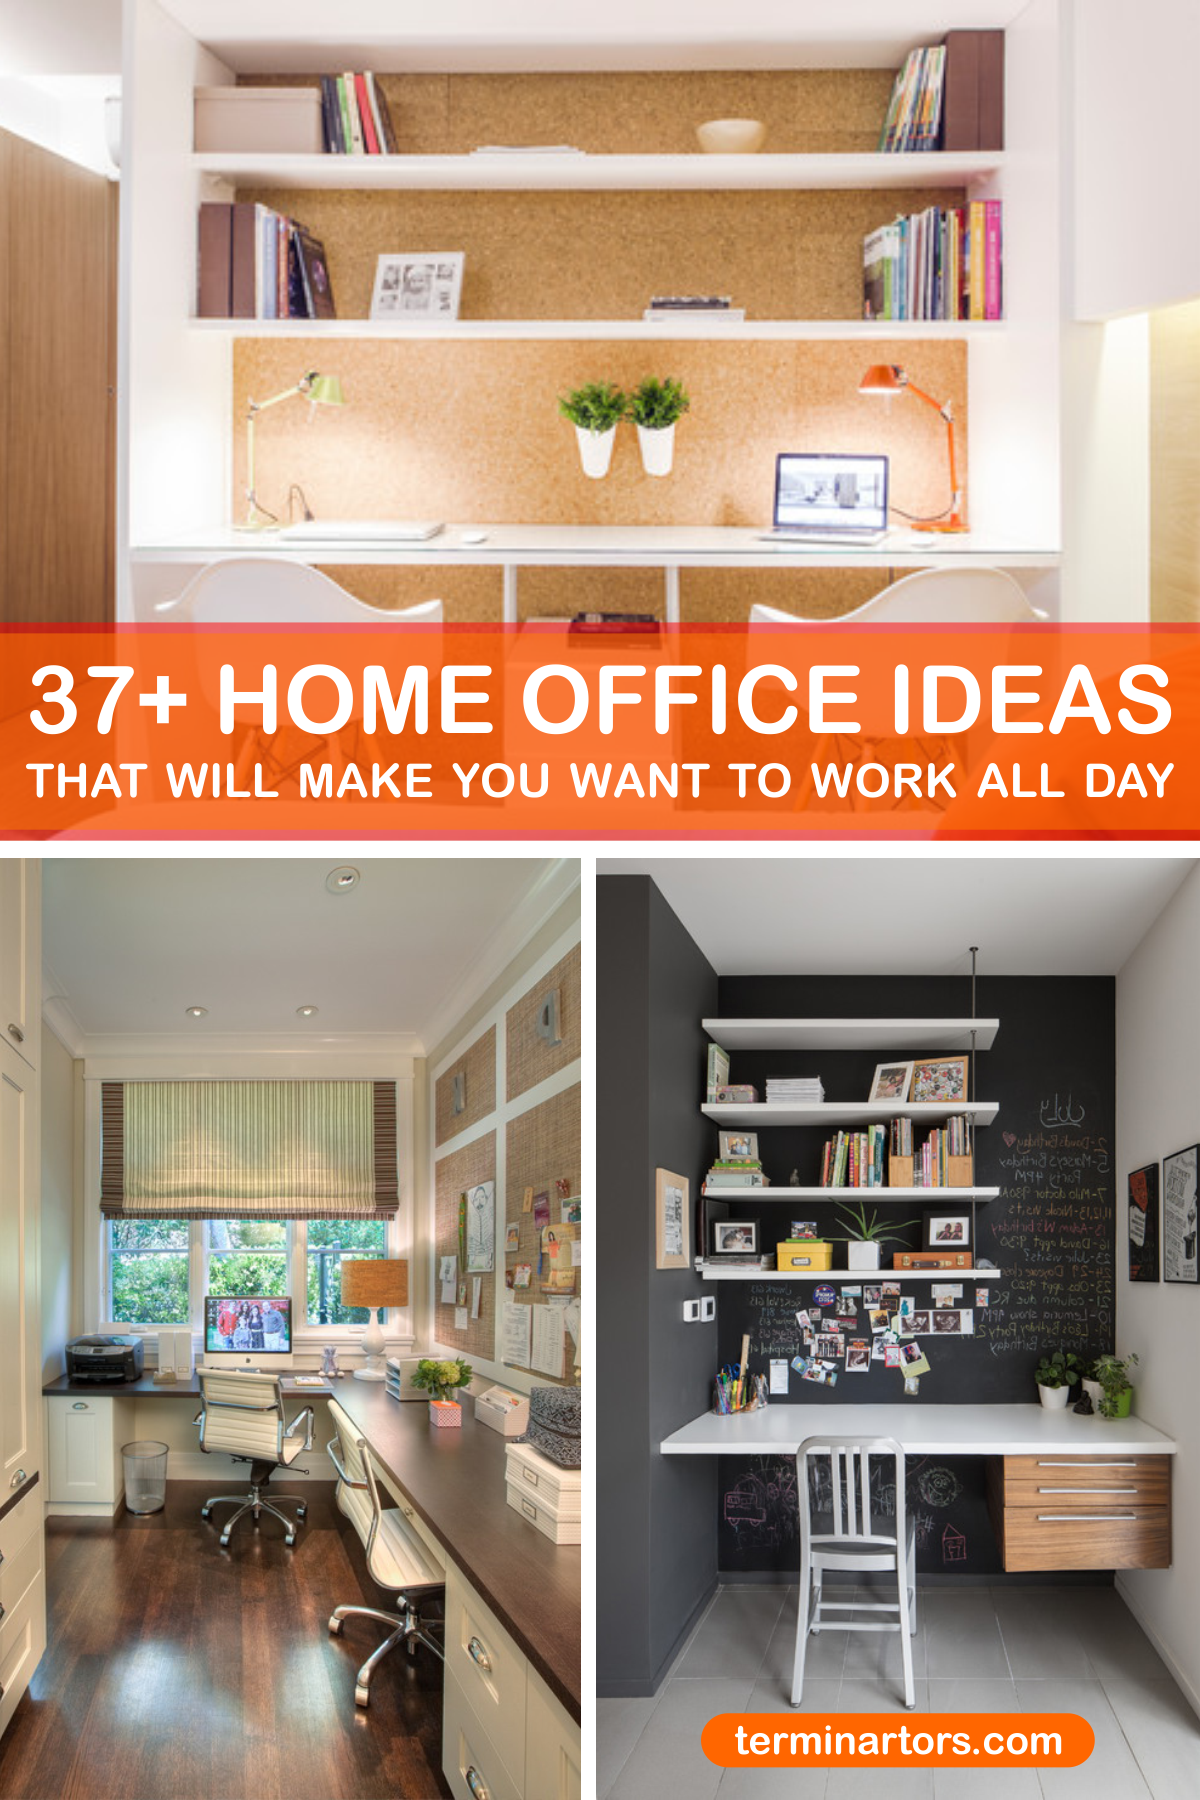 Working from home has become more than a trend here are 37 home office beautiful ideas that will make you wanna work all day